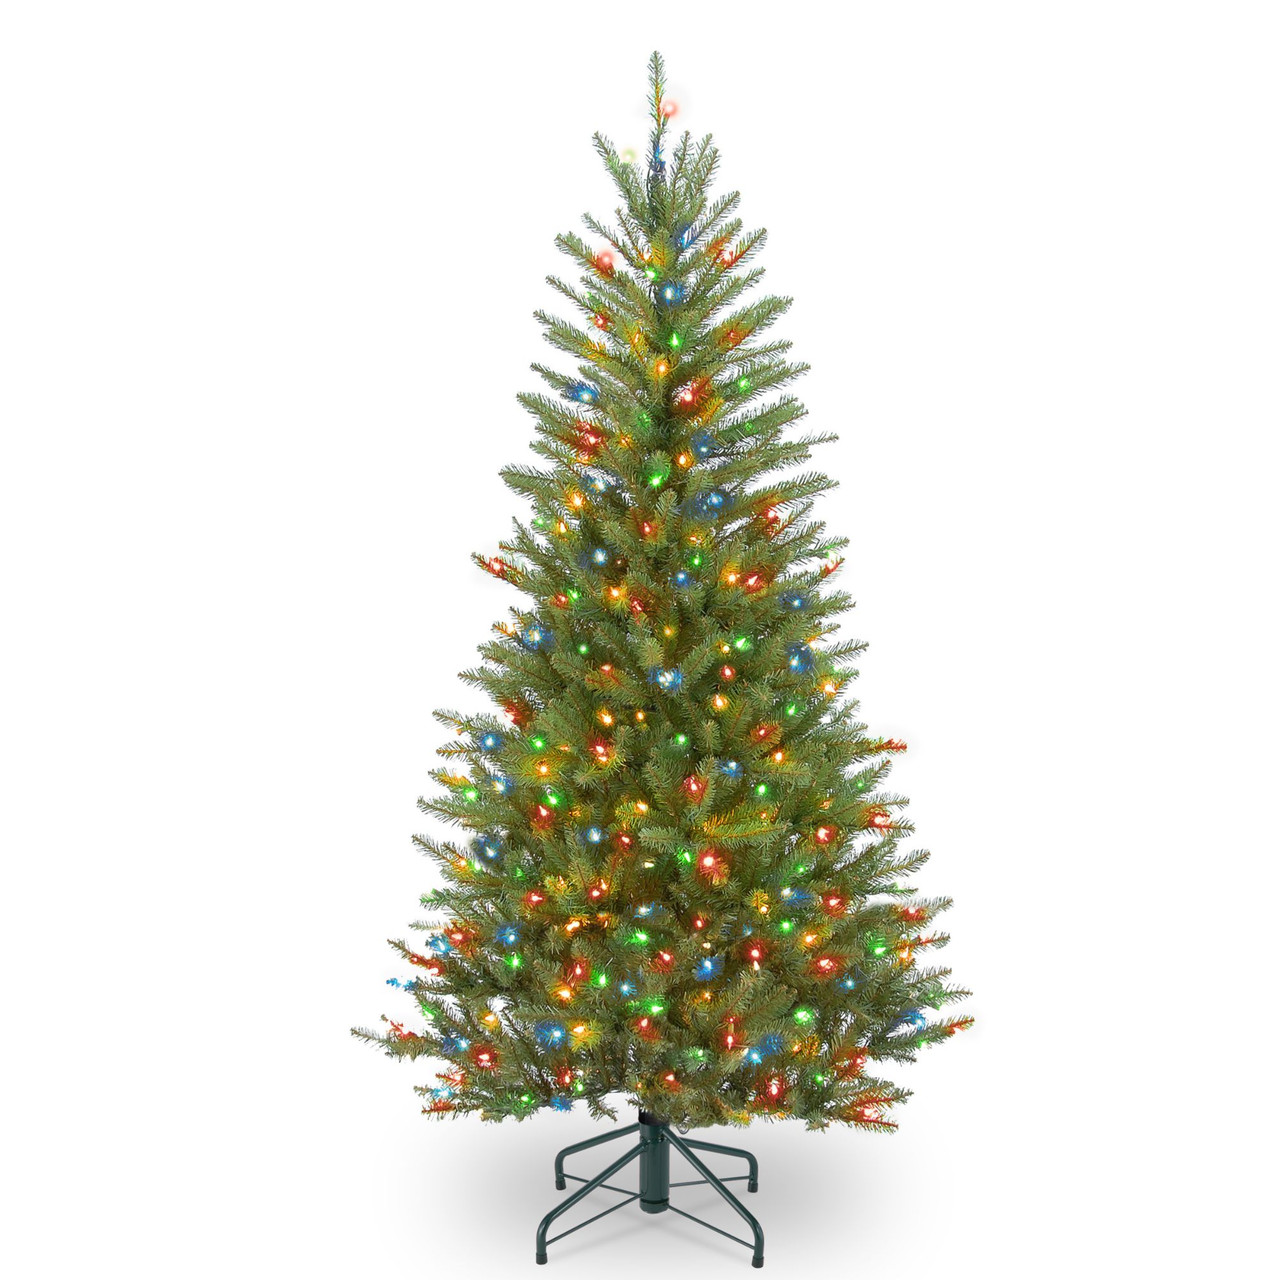 4.5' Pre-lit Dunhill Fir Slim Artificial Christmas Tree – Multicolor Lights  - 33367857